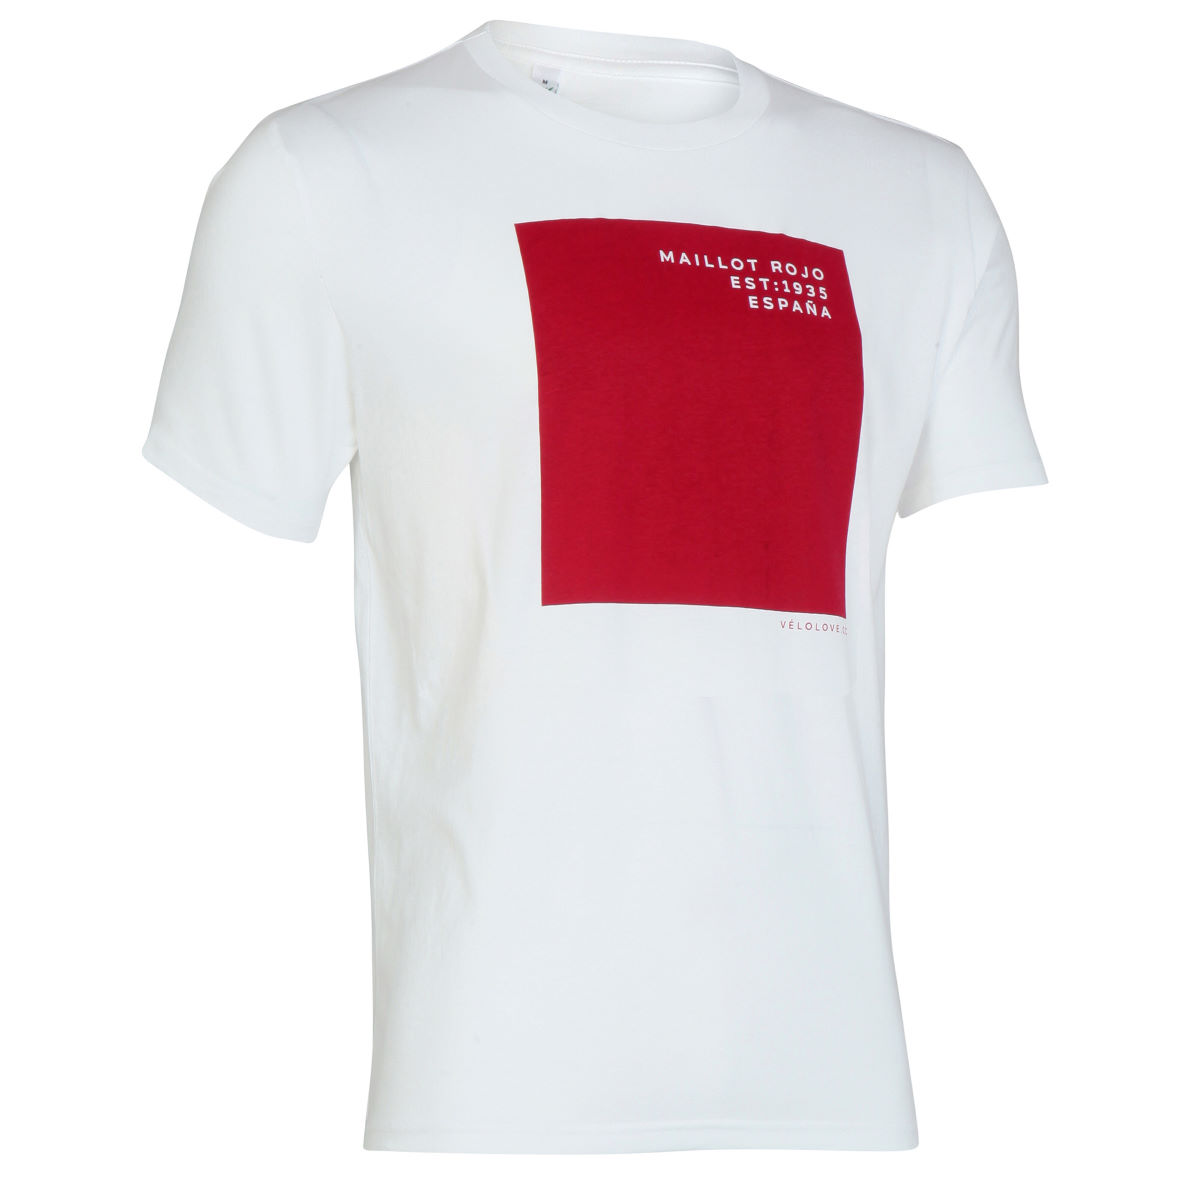 T-shirt Velolove Maillot Rojo - S White/ Red Block T-shirts